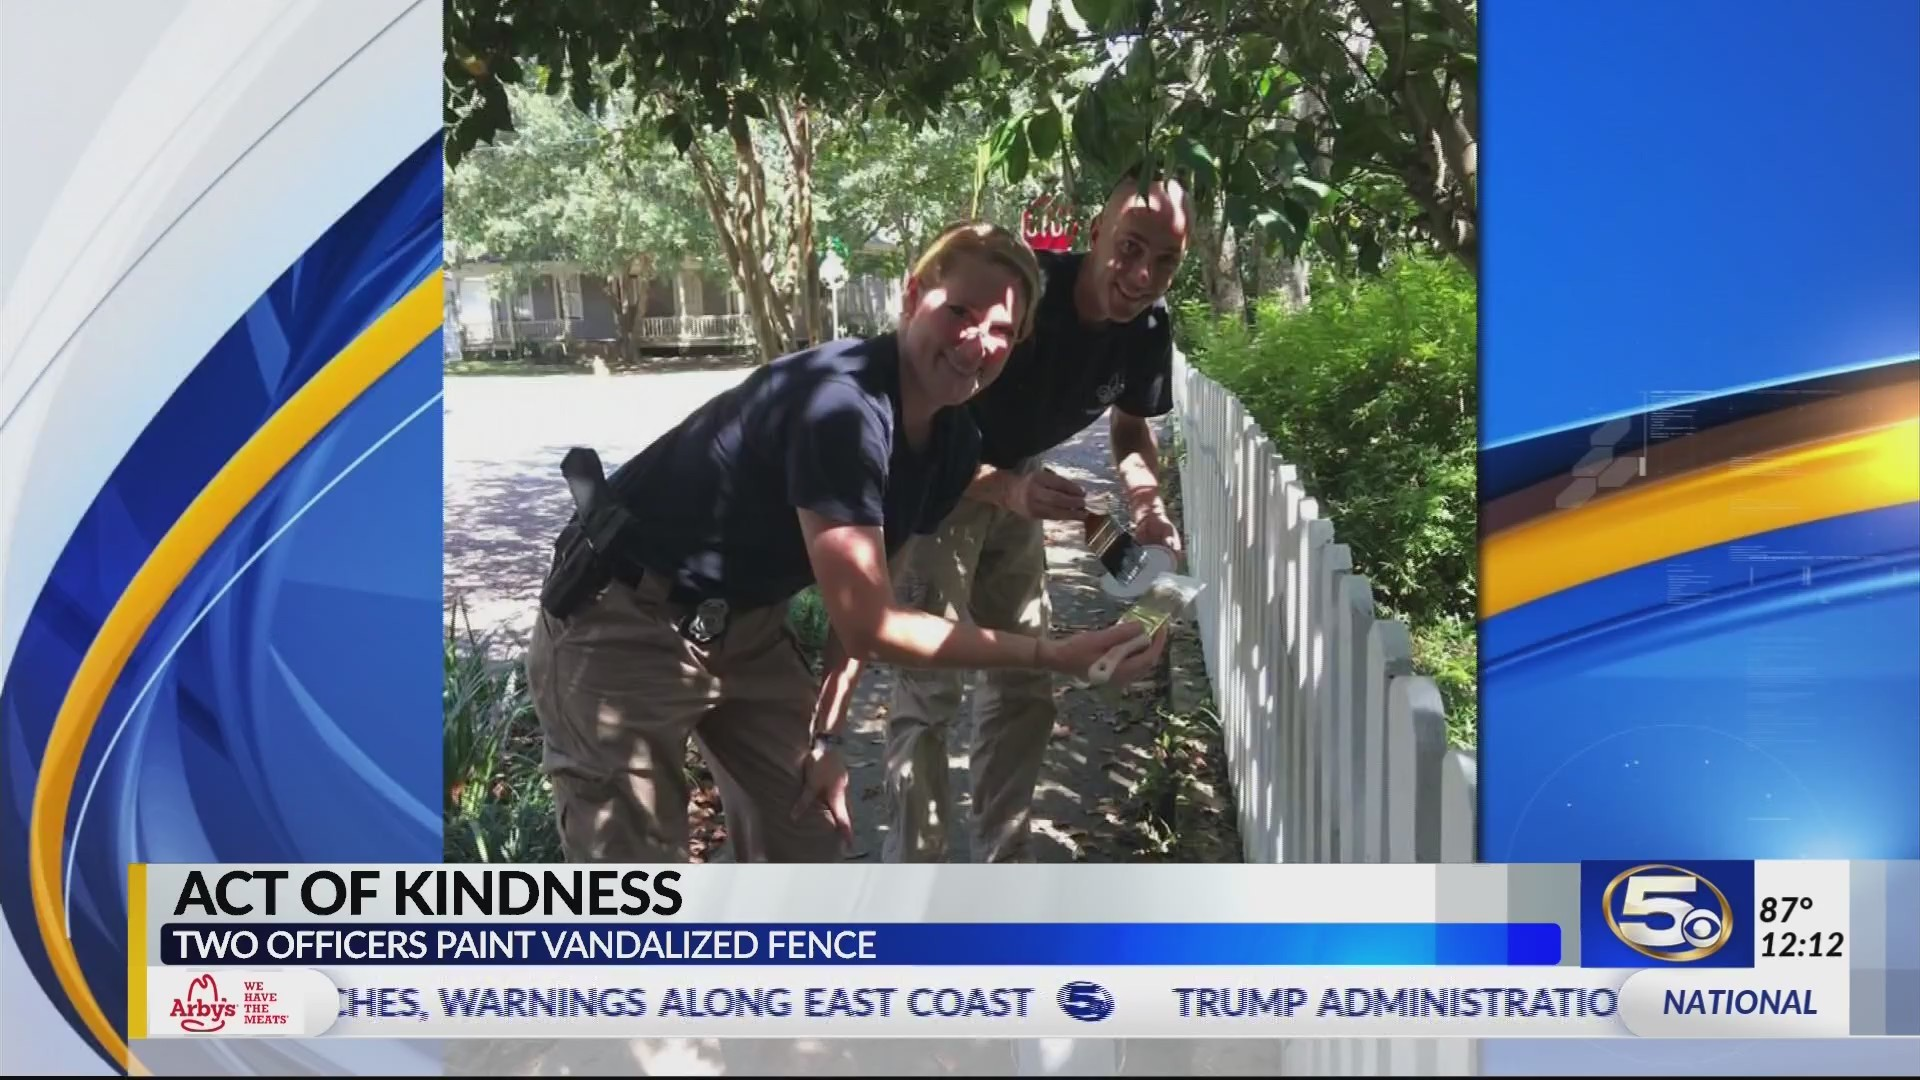 Act_of_kindness_from_Mobile_Police_0_20180912185649